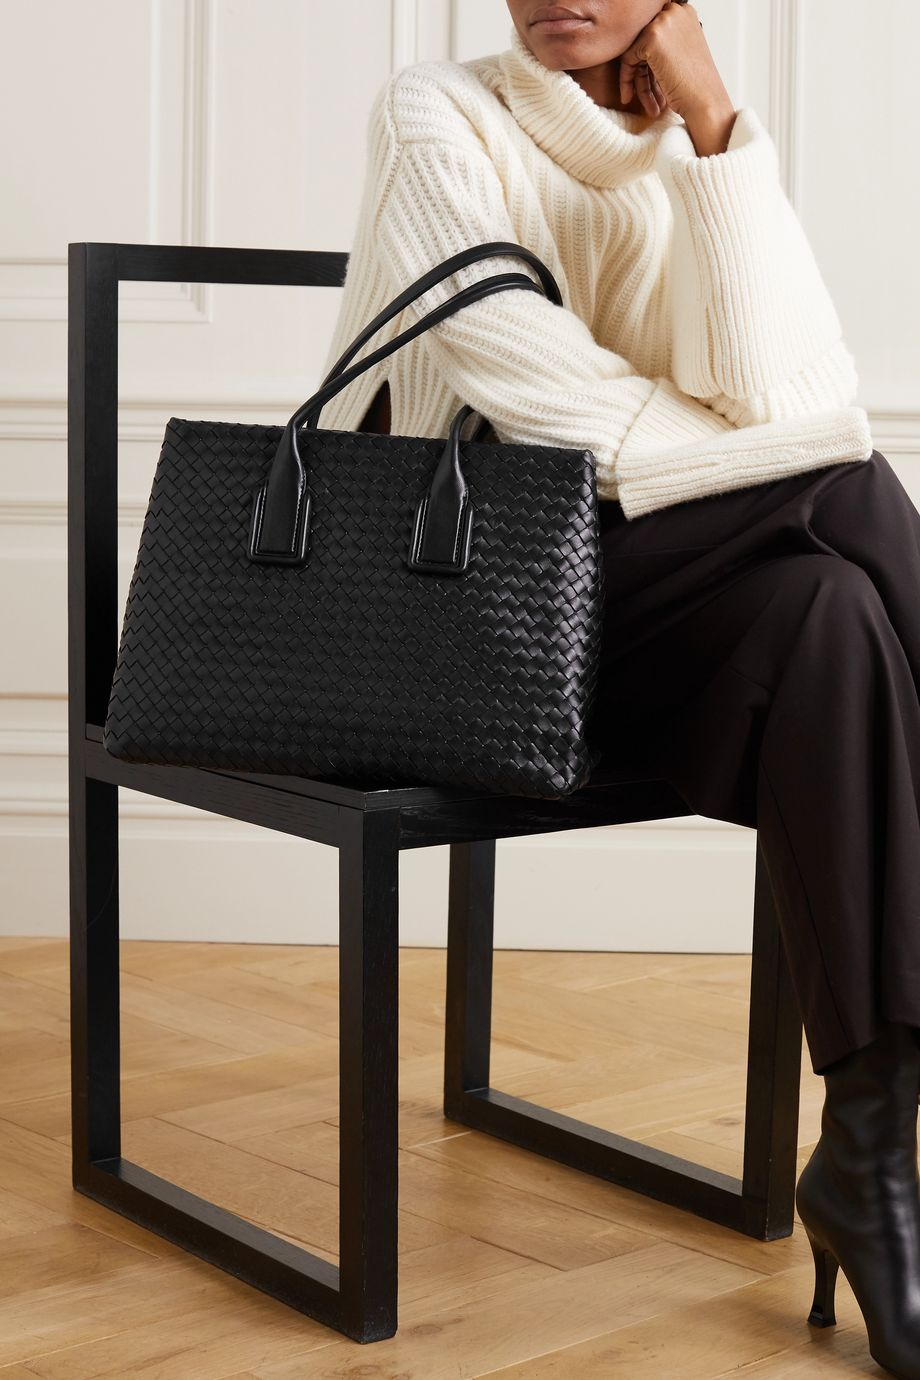 Bottega Veneta Sac à main en cuir Intrecciato Small